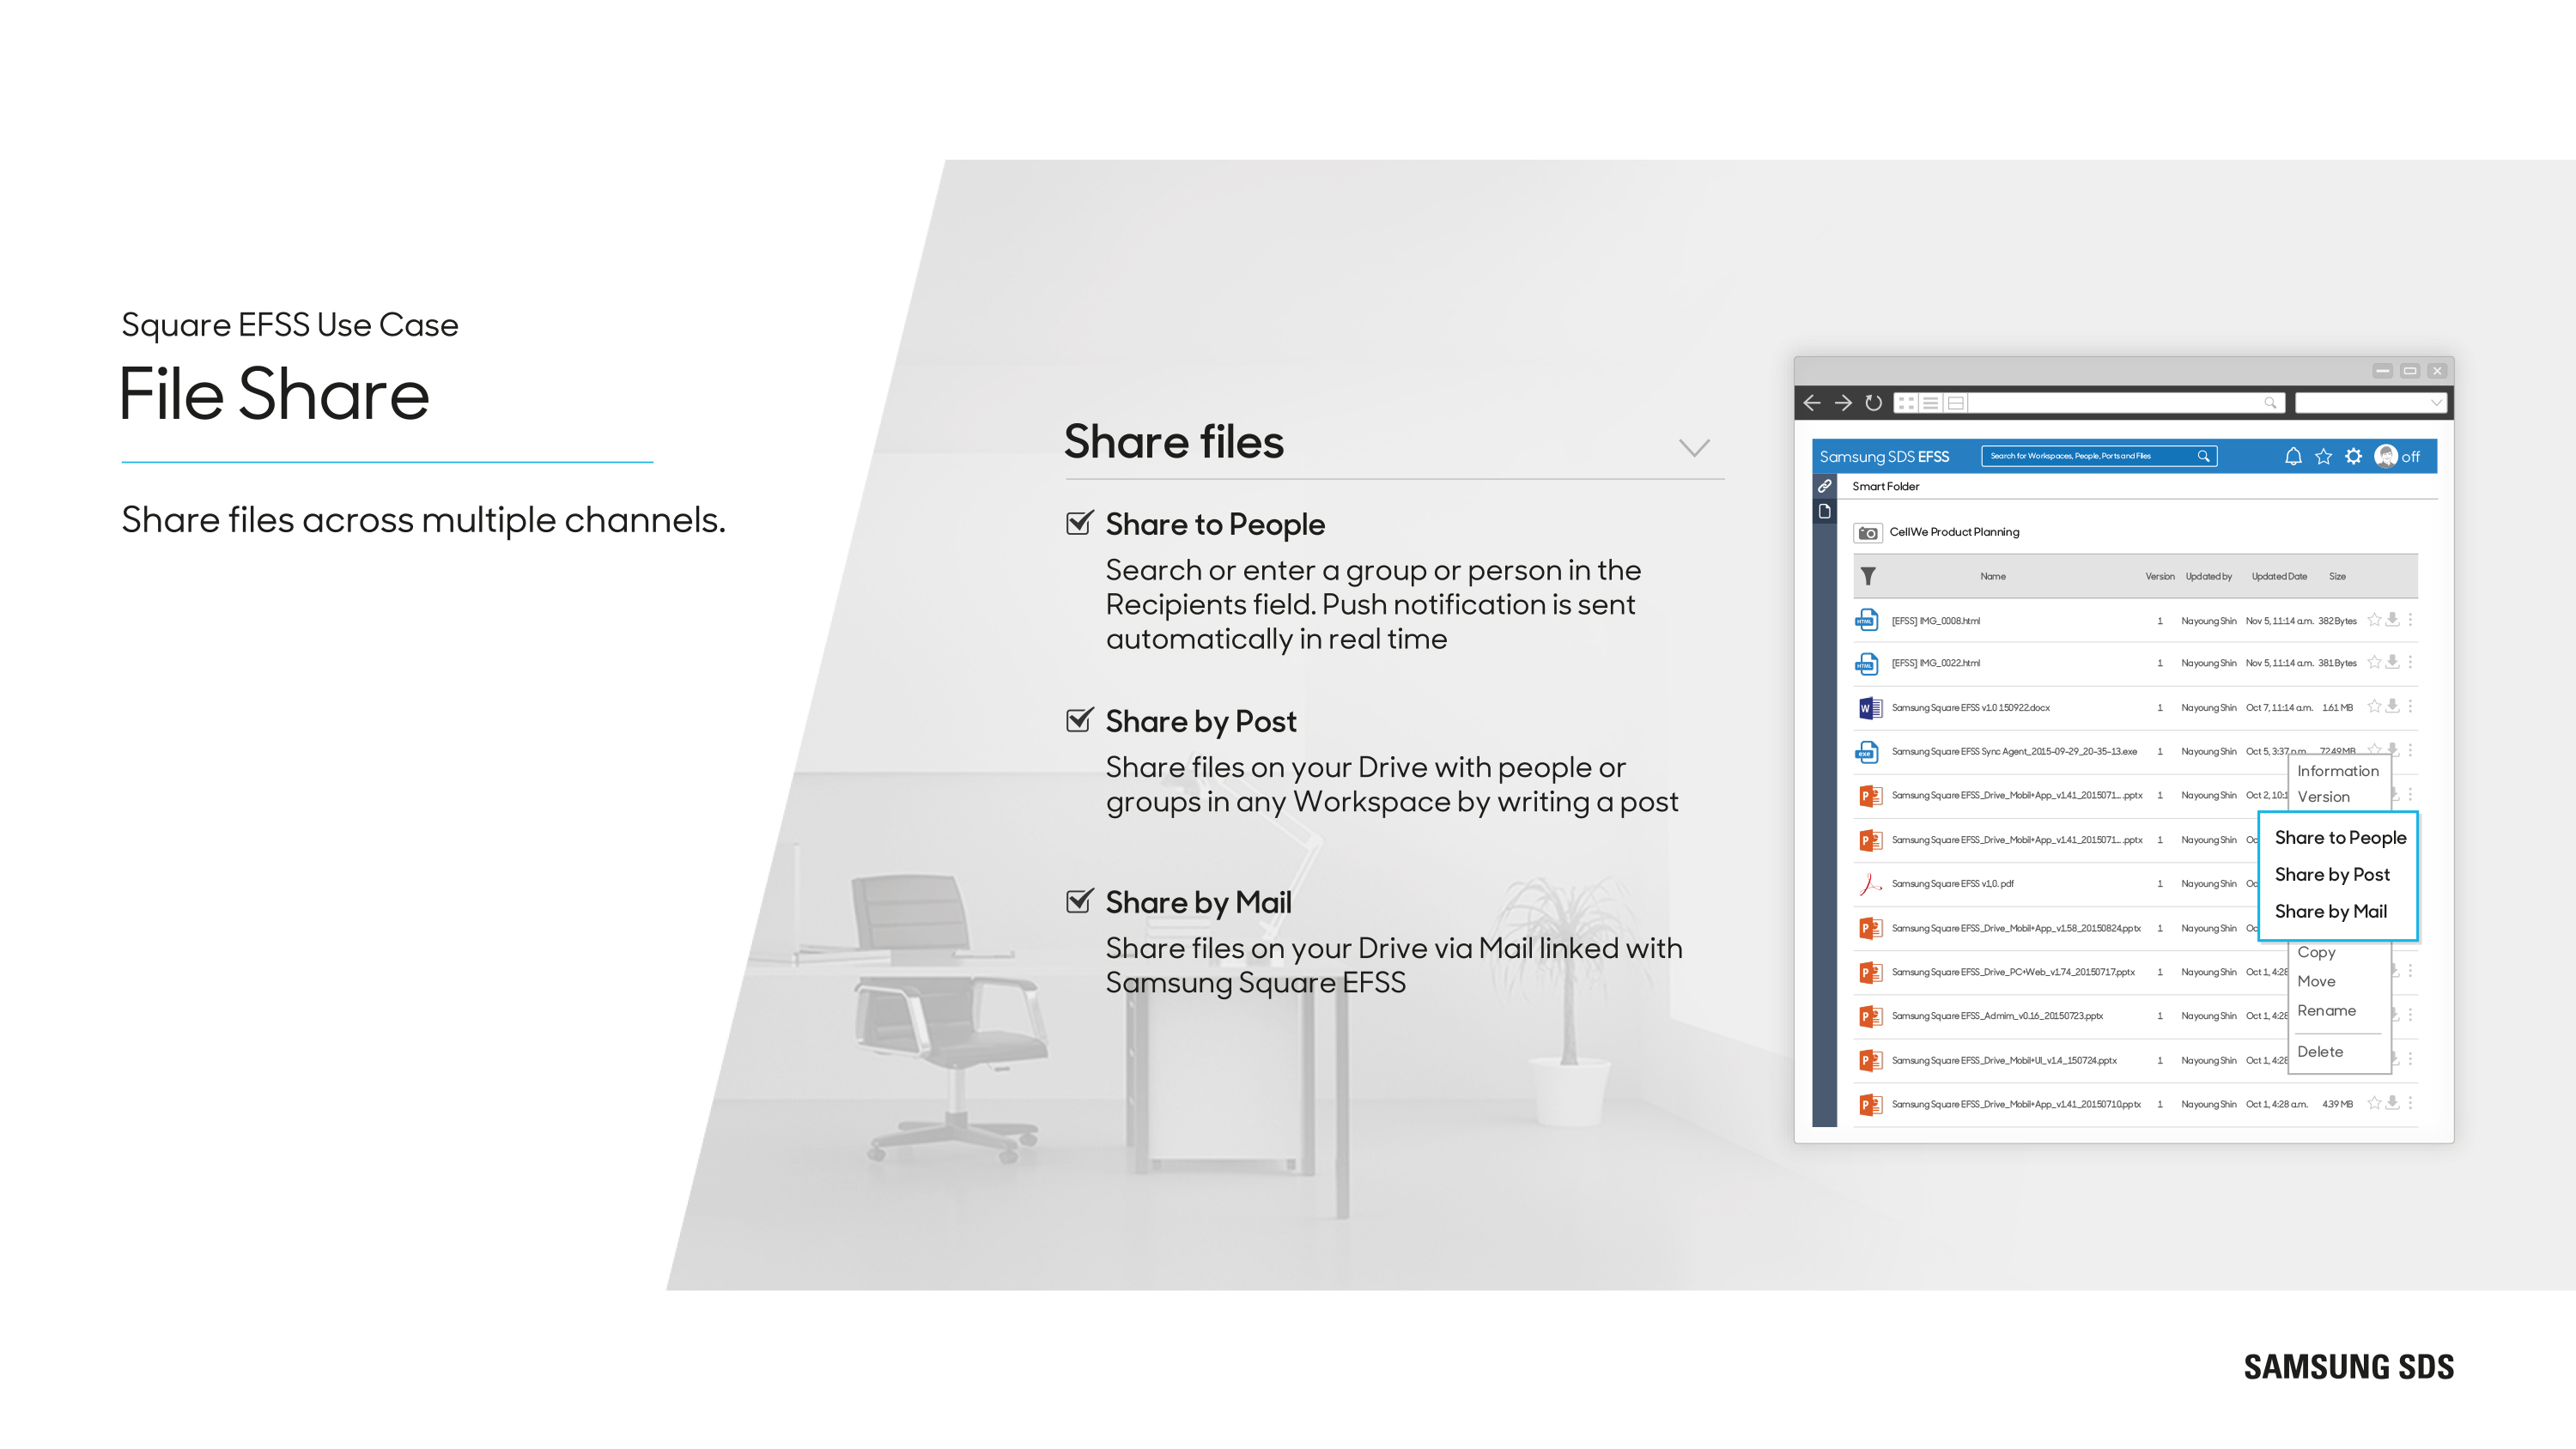 File Share Share files across multiple channels.